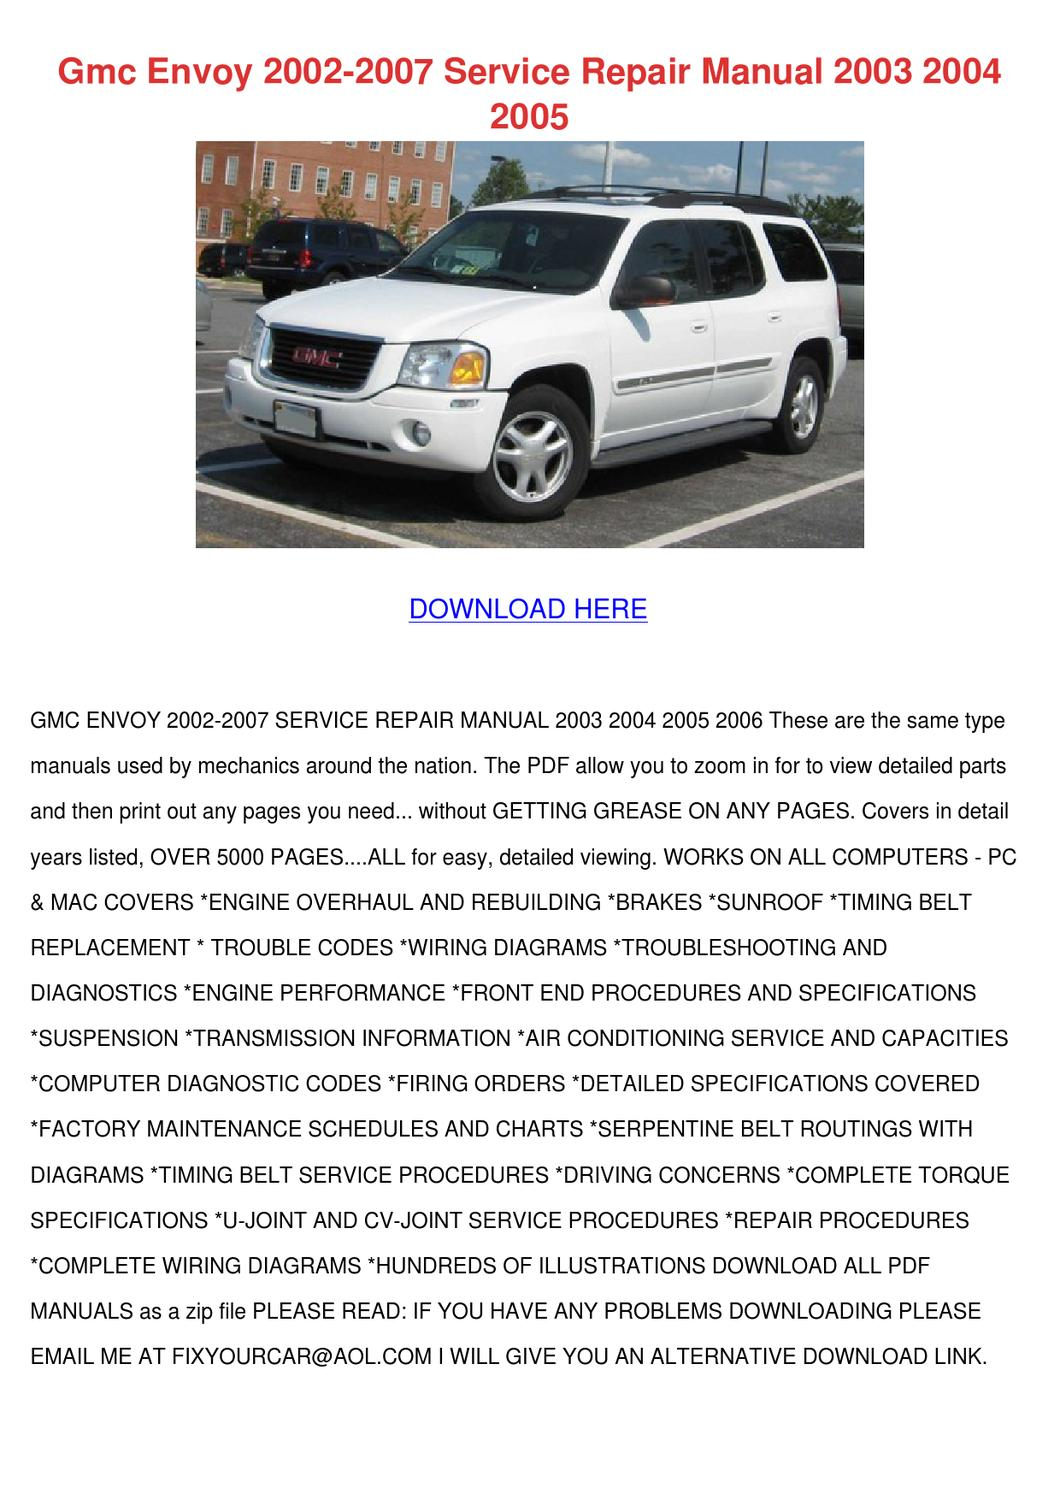 Gmc Envoy 2002 2007 Service Repair Manual 200 By Maxie Chomka Issuu 2003 Xl Wiring Diagram